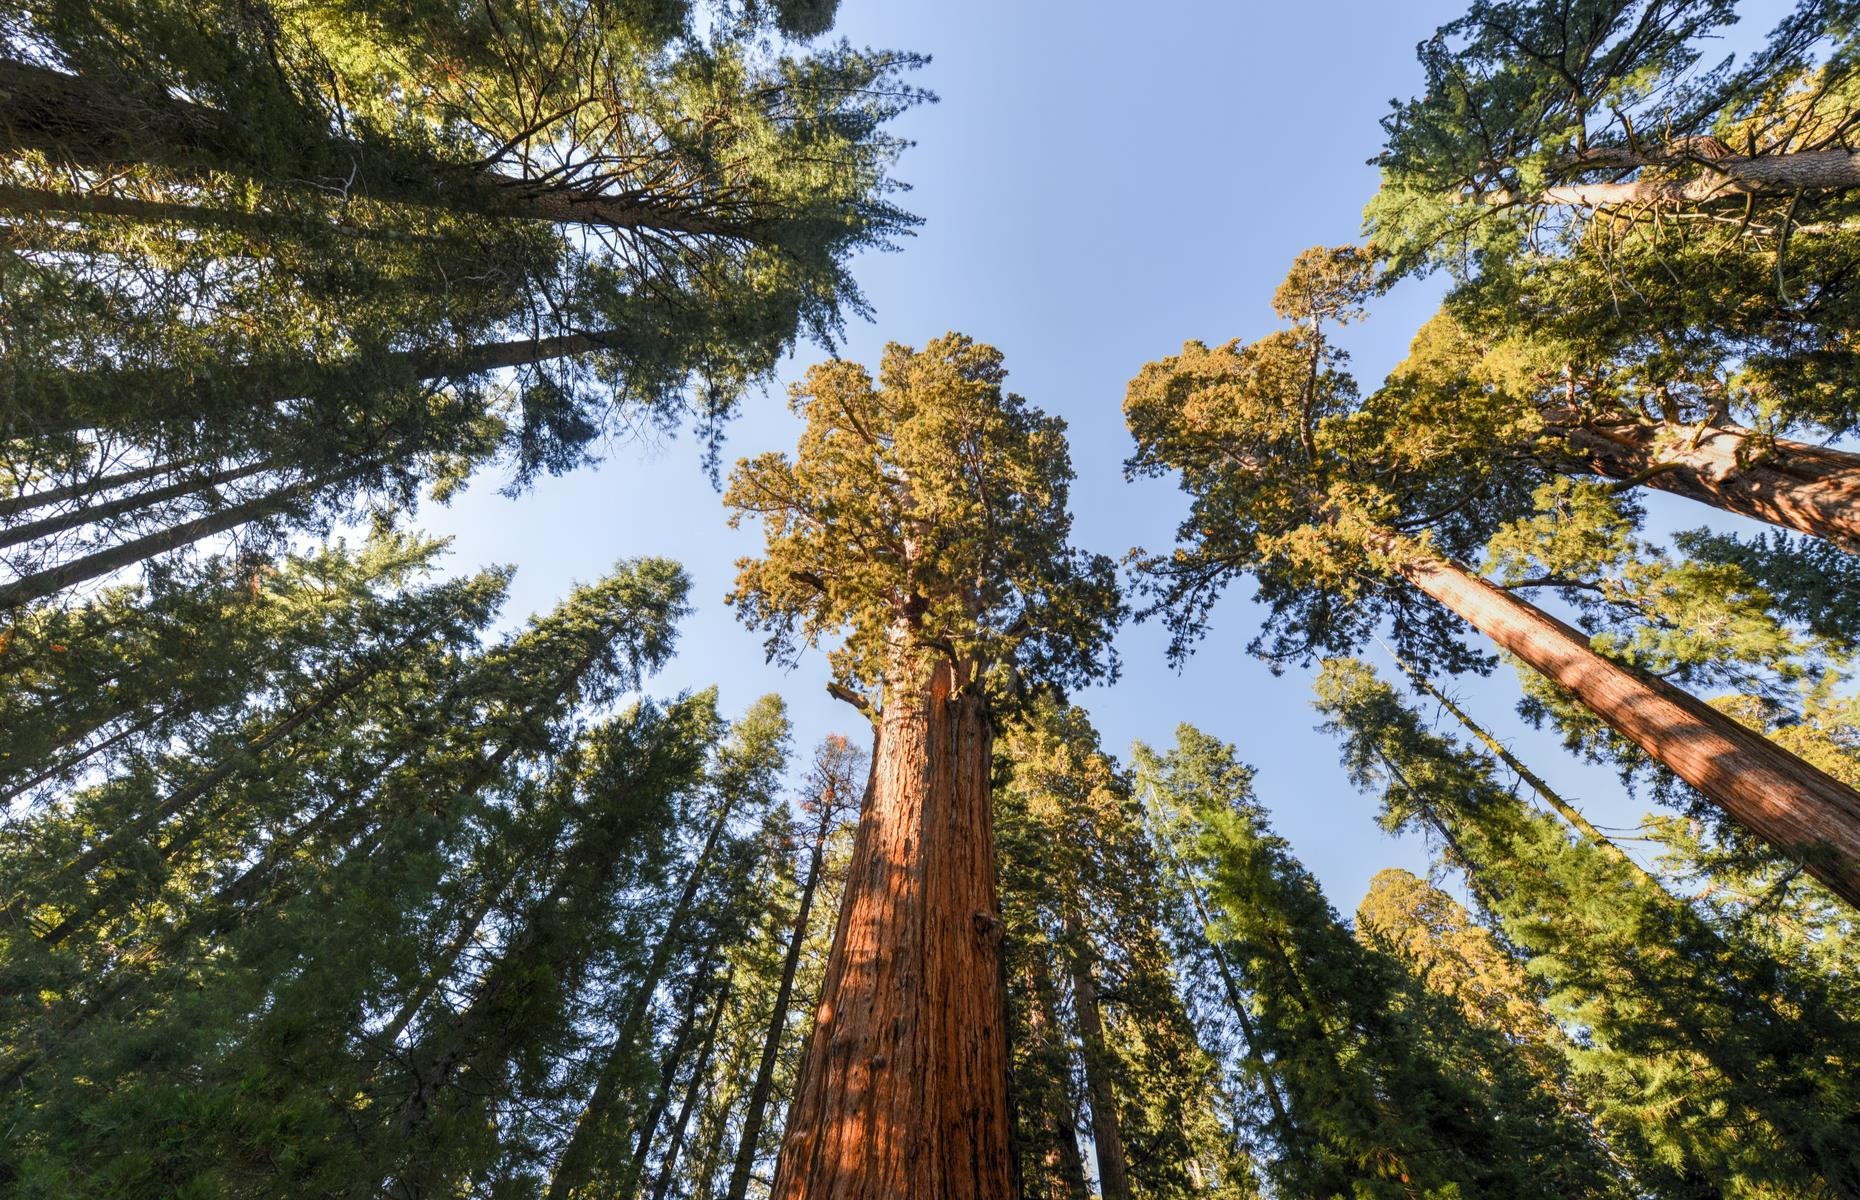 Slide 6 of 27: From one Golden State giant to another – General Sherman, a gargantuan sequoia tree in Sequoia National Park, is located in the aptly named Giant Forest. Trails lead up to the mighty specimen, which (by volume) is the largest known living single-stem tree on Earth.